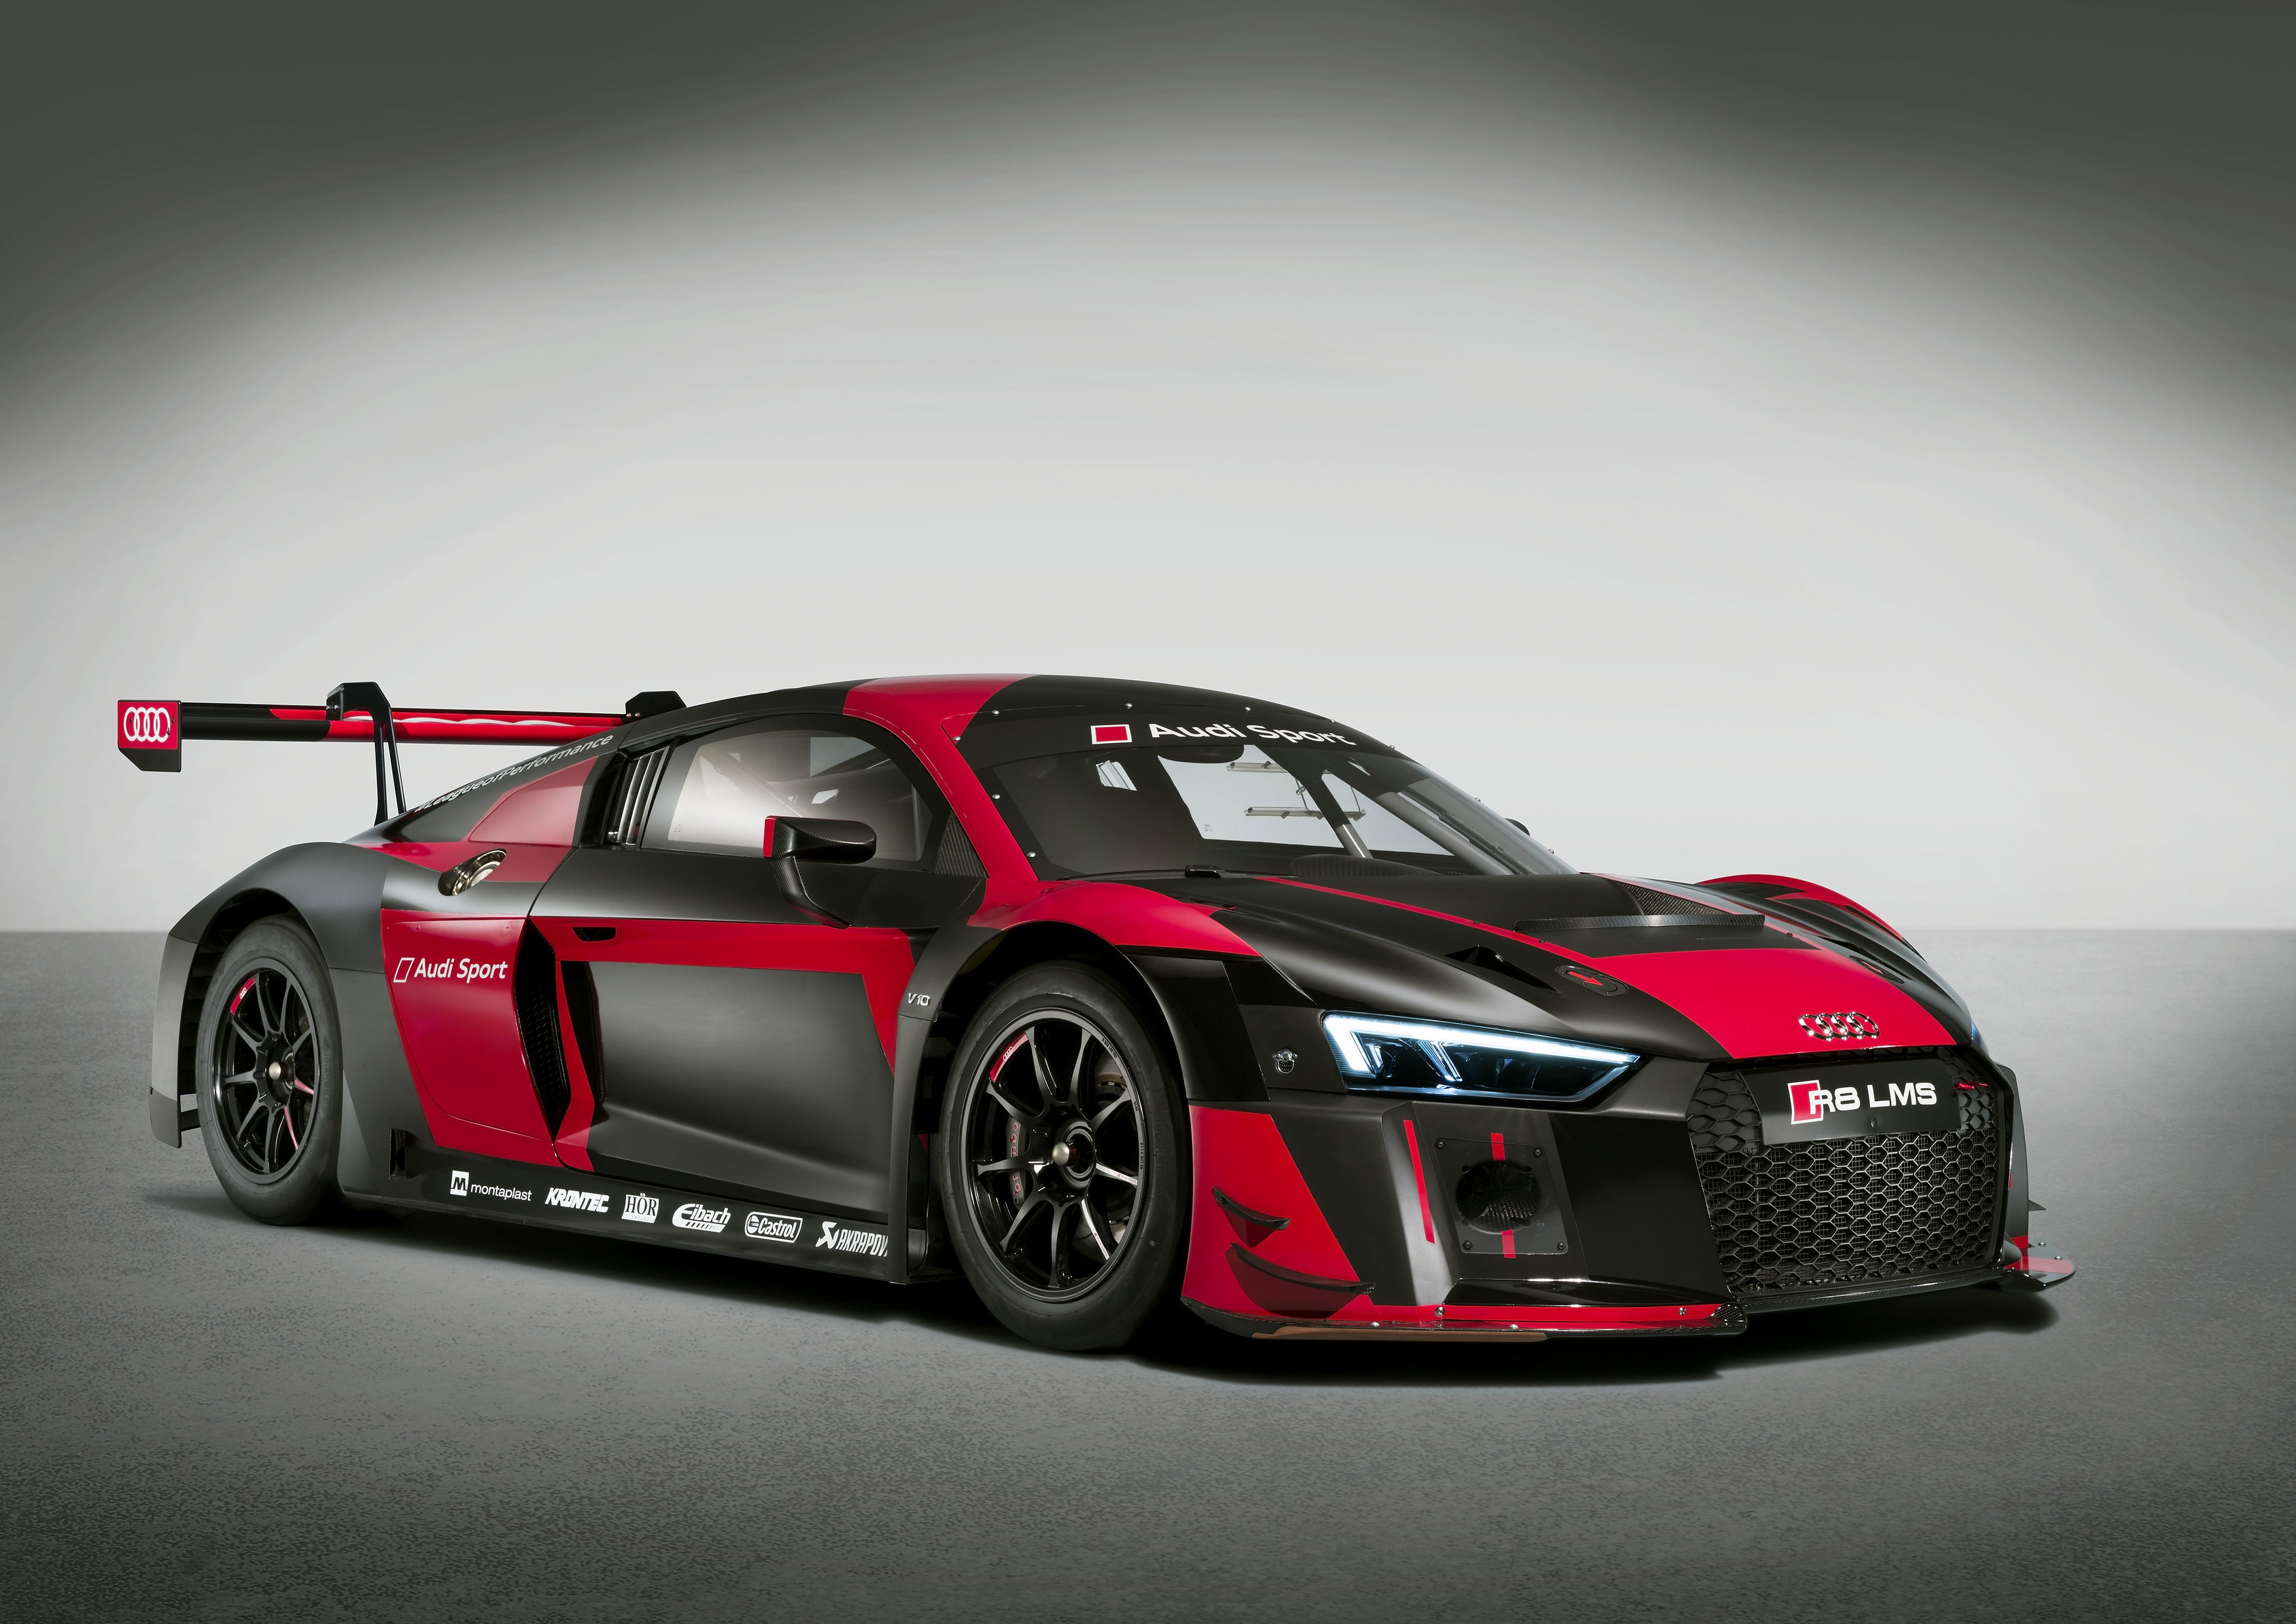 Take A Look At The New Audi R8 Lms Gt3 Evo And Non Evo Side By Side